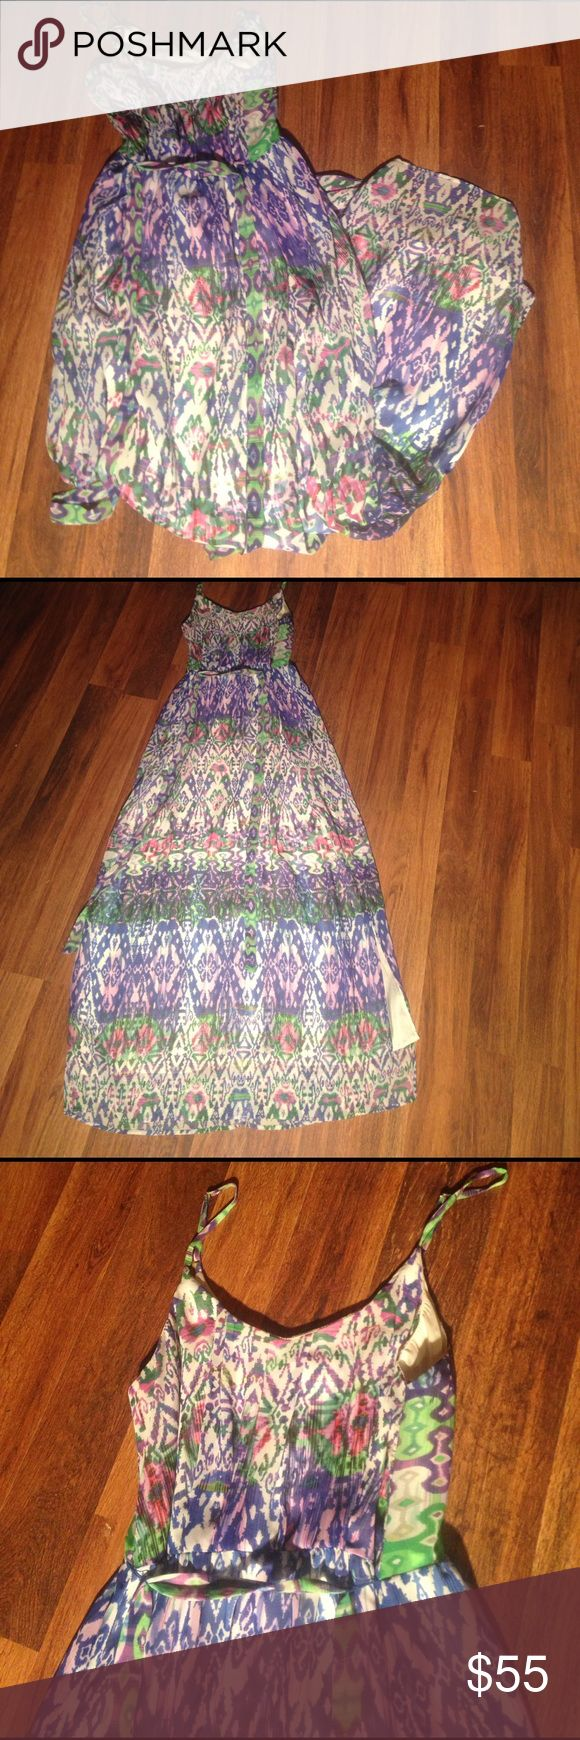 """Only worn once Charlie jade dress Charlie Jade multi color dress, mostly green, pink and purple though. Size medium. Bought for my brothers wedding and that was the only time it was worn. Still in like new condition. Was very comfortable and light weight. Has slits 14 1/2"""" up the sides. Top layer is see through but has a bottom silk layer. Adjustable spaghetti straps. Zips up the back and ties around the waist. 35"""" from armpit to top of slit. 50"""" from armpit to bottom hem. 20 1/2"""" from…"""